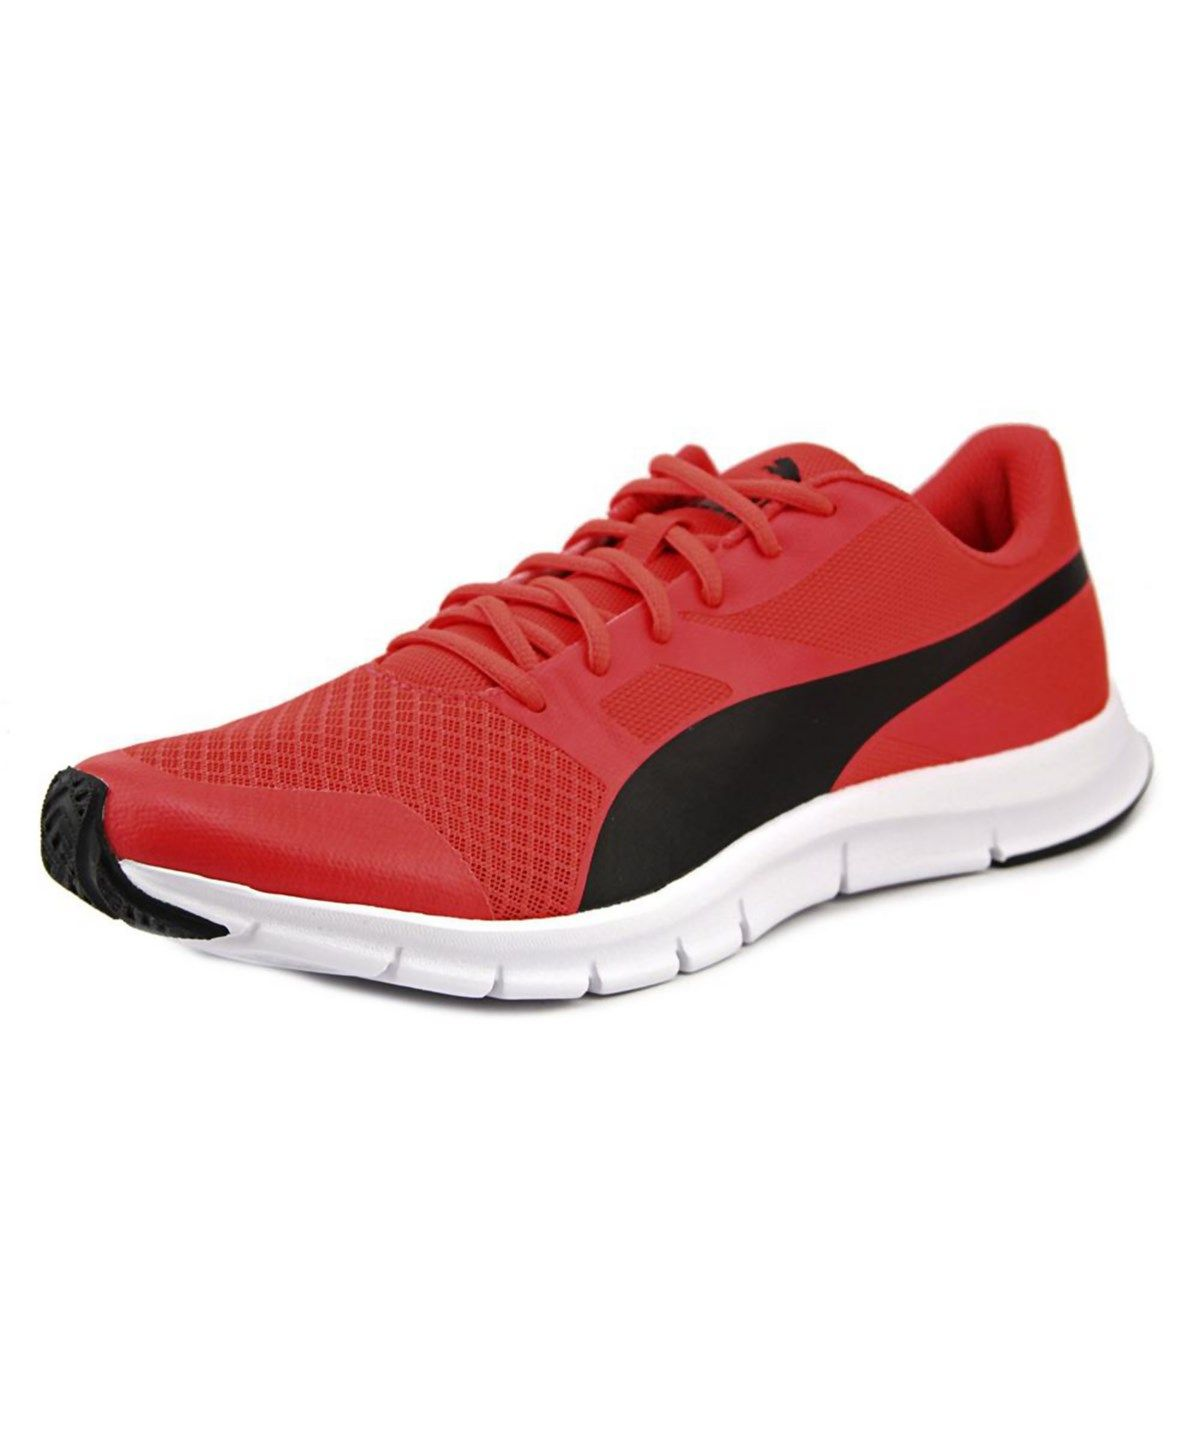 PUMA PUMA FLEXRACER MEN ROUND TOE SYNTHETIC RED RUNNING SHOE .  puma  shoes   sneakers 331f3825f